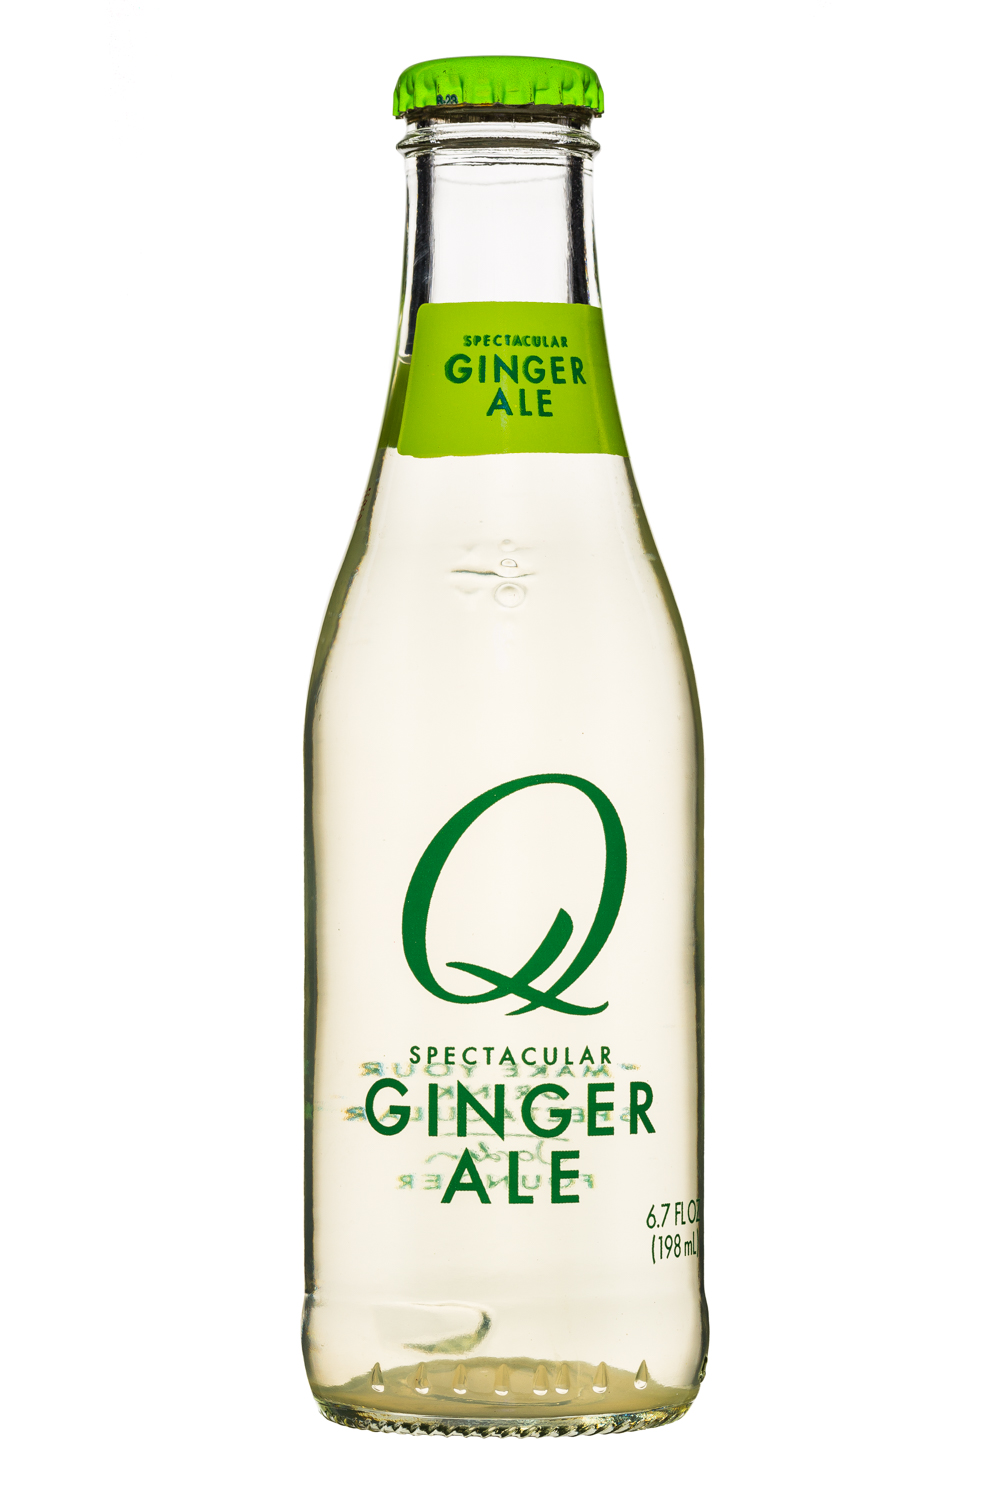 Q drinks: Q-Spectacular-7oz-GingerAle-Front